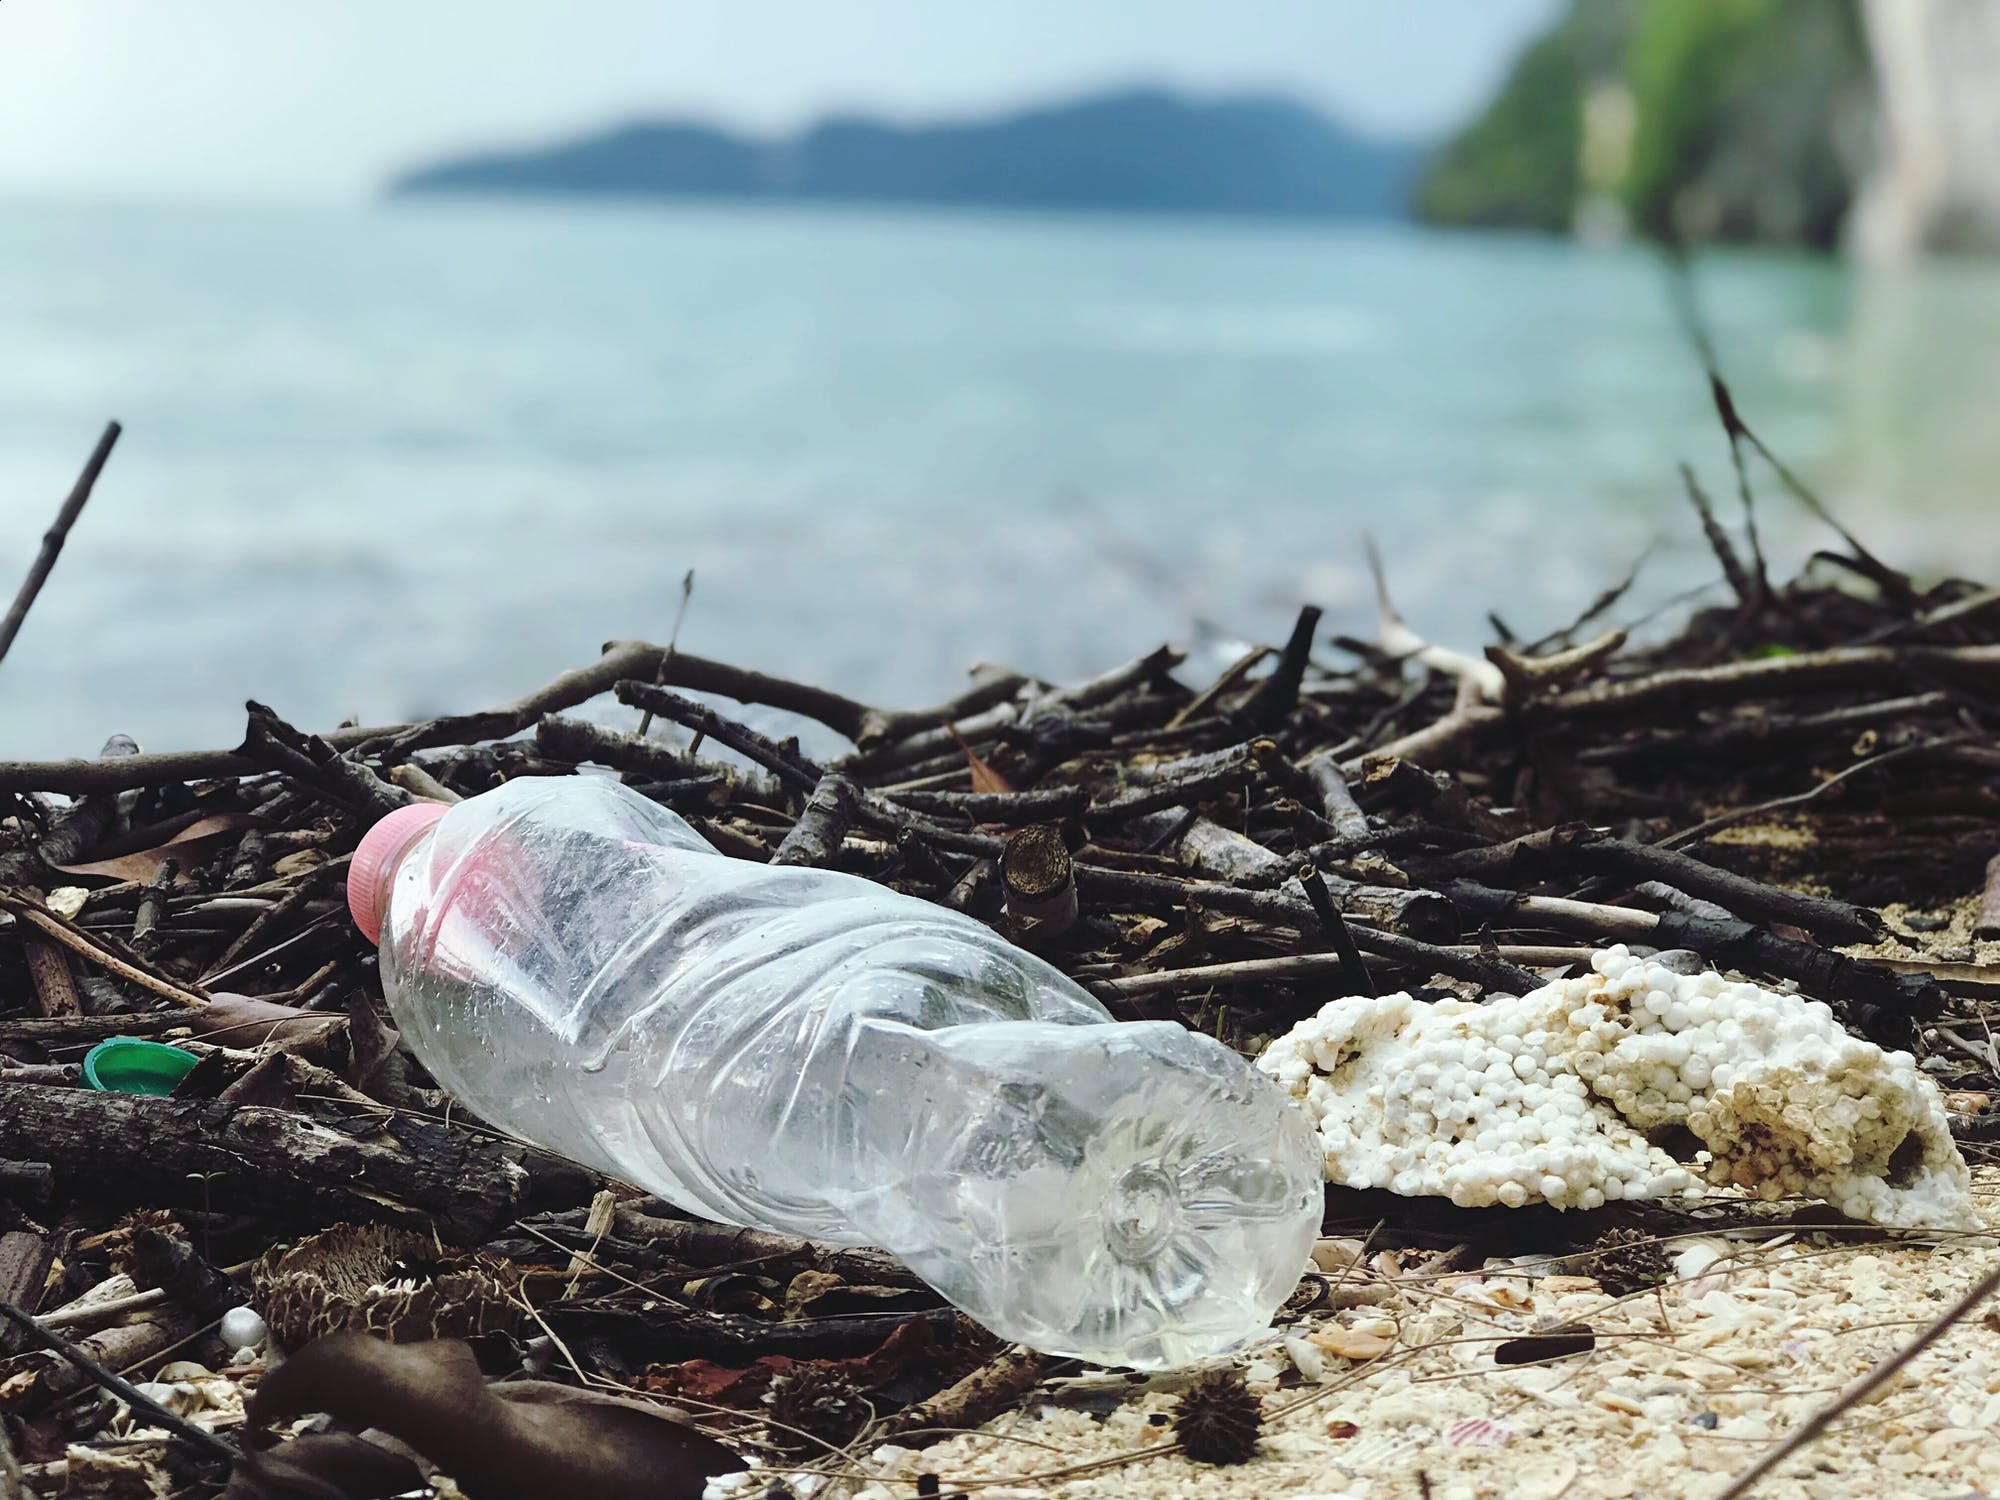 New WWF Report Highlights Challenges and Solutions in Corporate Plastic Management